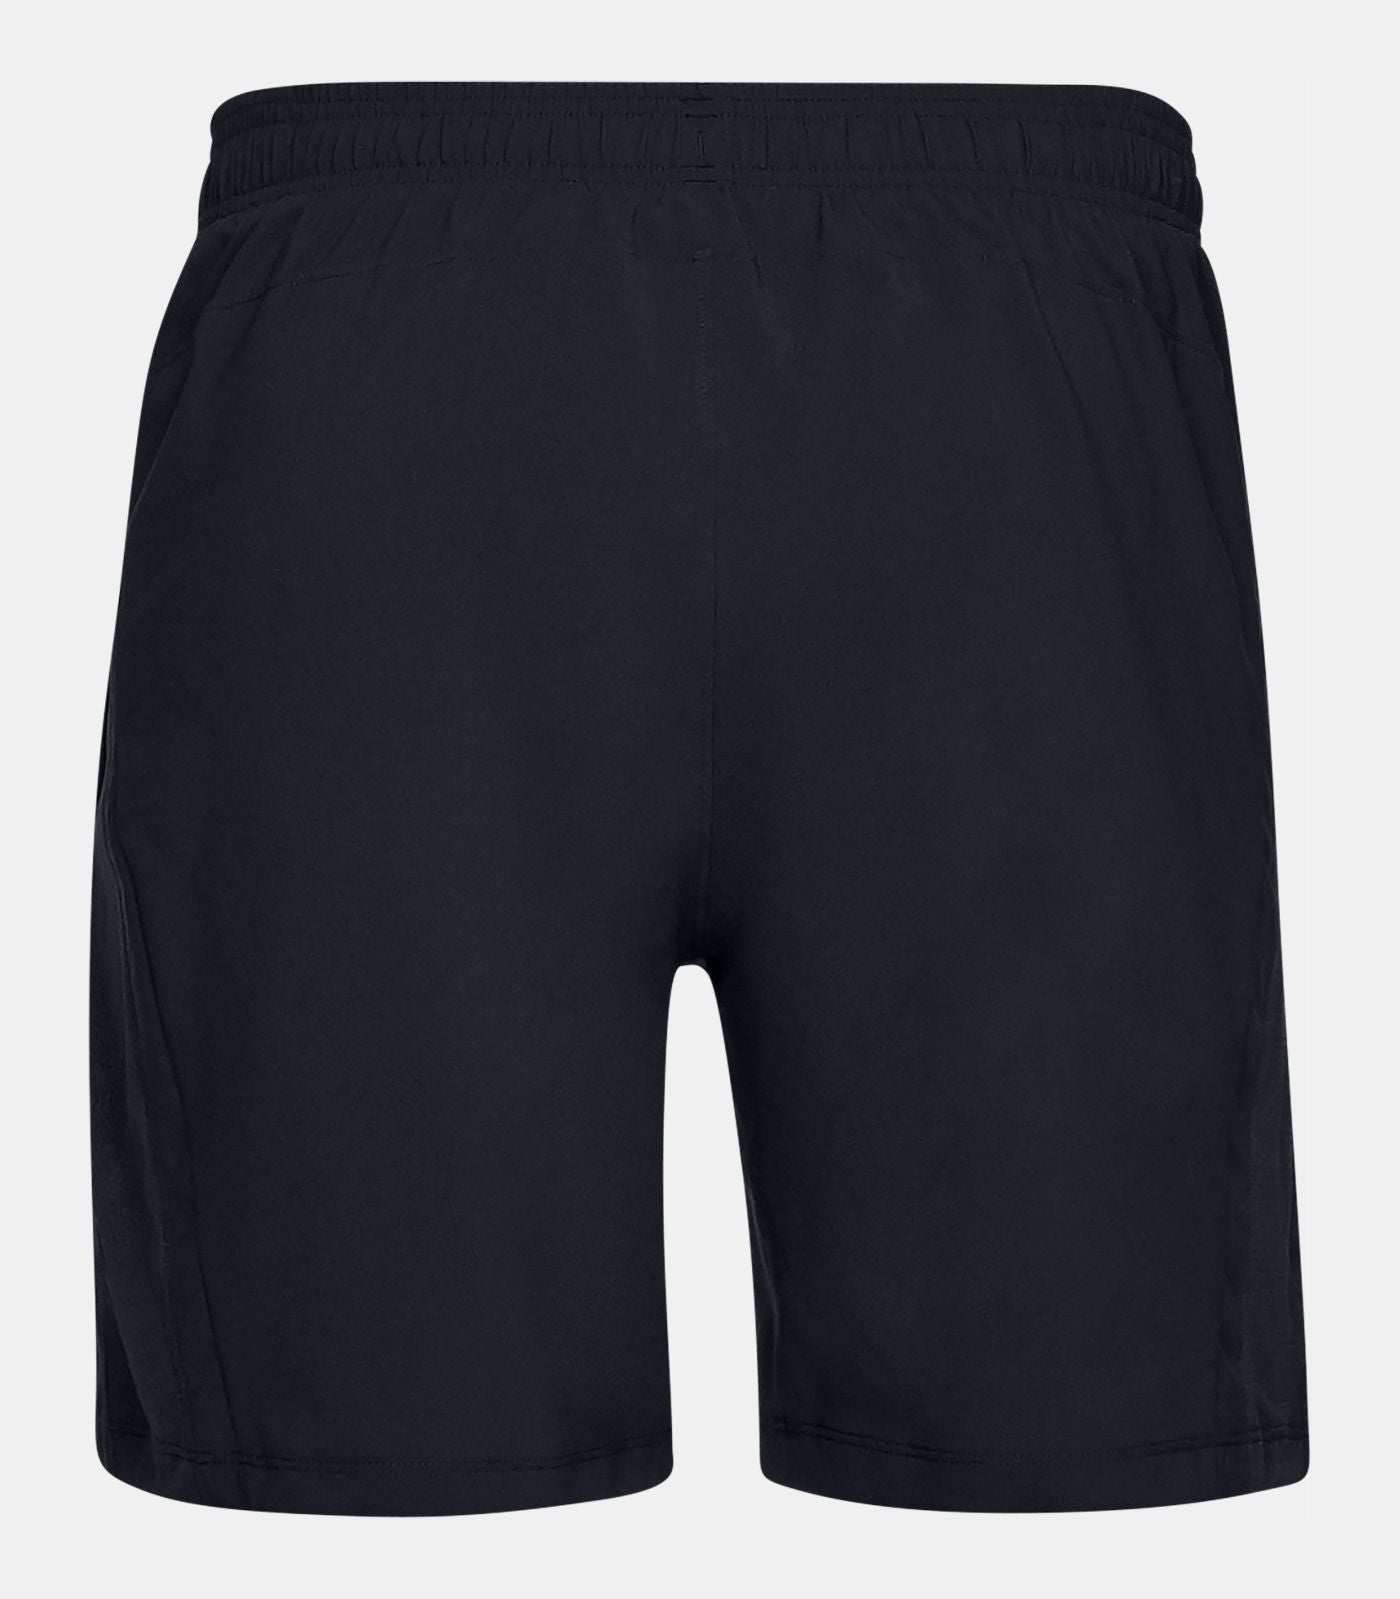 Men's Launch SW 2-in-1 Short (001 - Black)